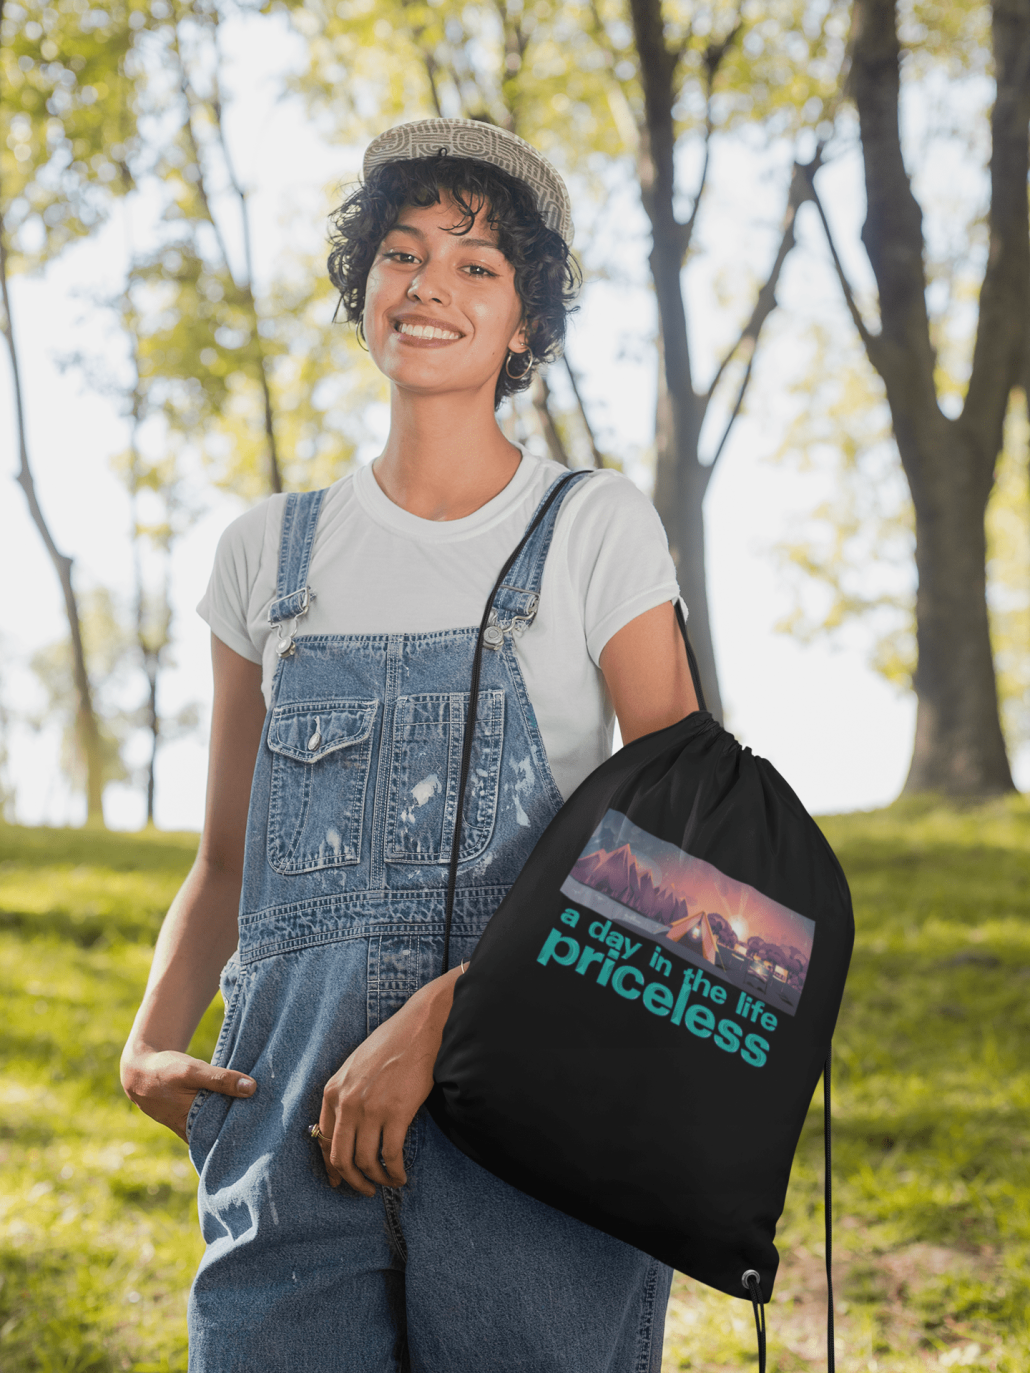 Drawstring bag with custom design and text